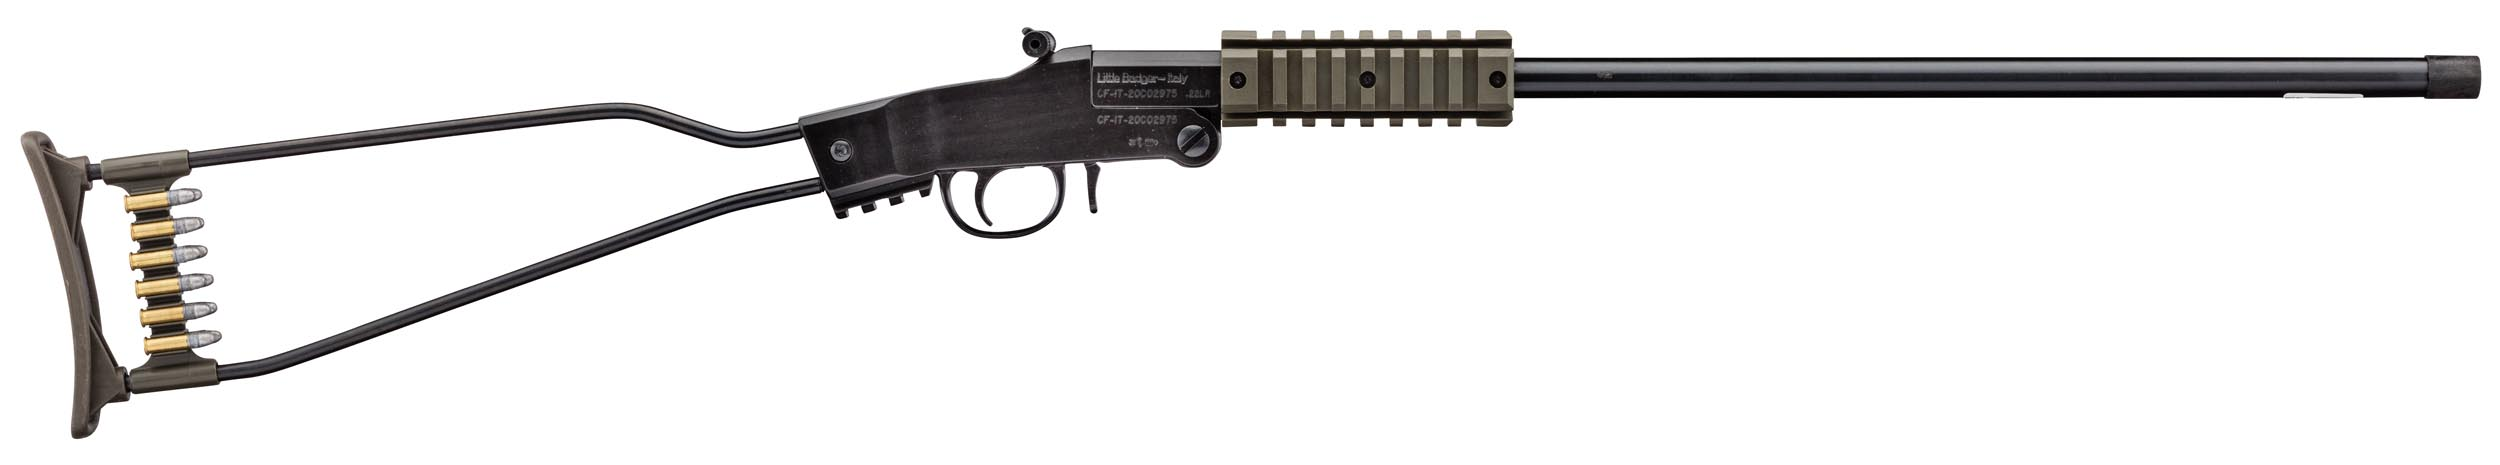 CR382OD-2 Carabine pliante Little Badger 22 LR OD- Chiappa Firearms - CR382OD